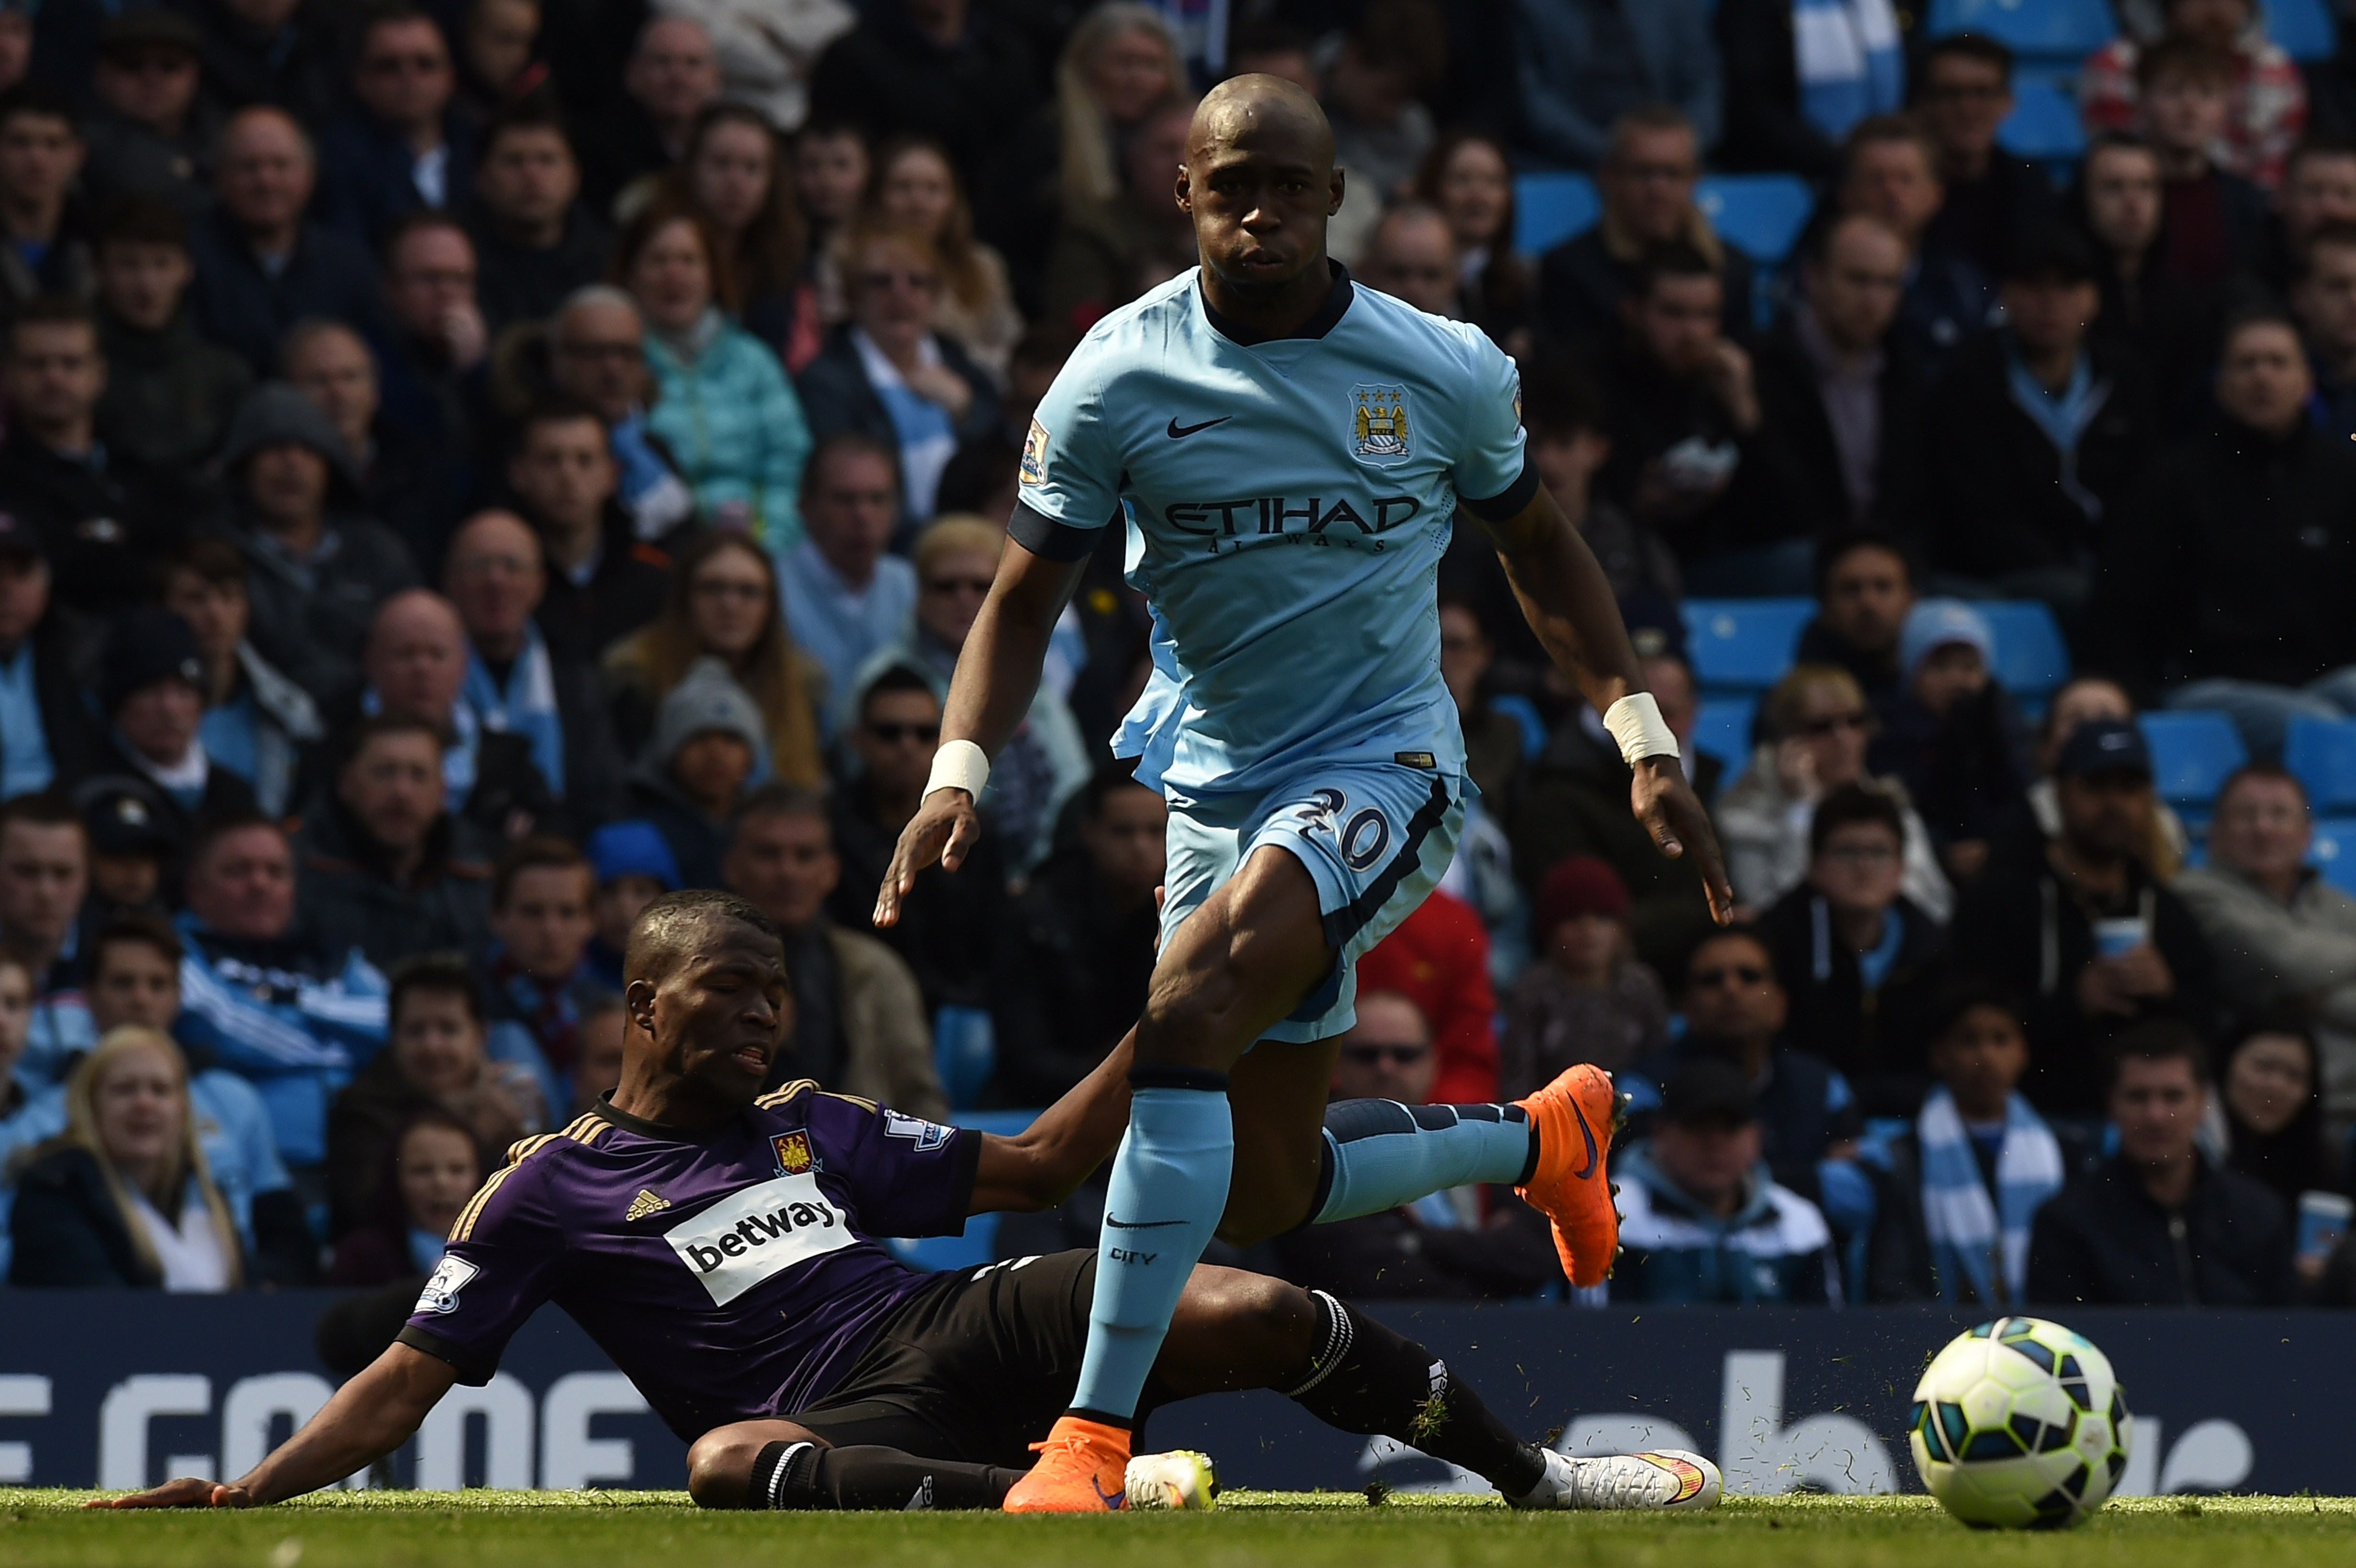 Manchester City's French defender Eliaquim Mangala (R) beats West Ham United's Cameroonian midfielder Alex Song (L) during the English Premier League football match between Manchester City and West Ham United at the Etihad Stadium in Manchester, north west England on April 19, 2015. AFP PHOTO / PAUL ELLIS RESTRICTED TO EDITORIAL USE. No use with unauthorized audio, video, data, fixture lists, club/league logos or live services. Online in-match use limited to 45 images, no video emulation. No use in betting, games or single club/league/player publications. (Photo credit should read PAUL ELLIS/AFP/Getty Images)